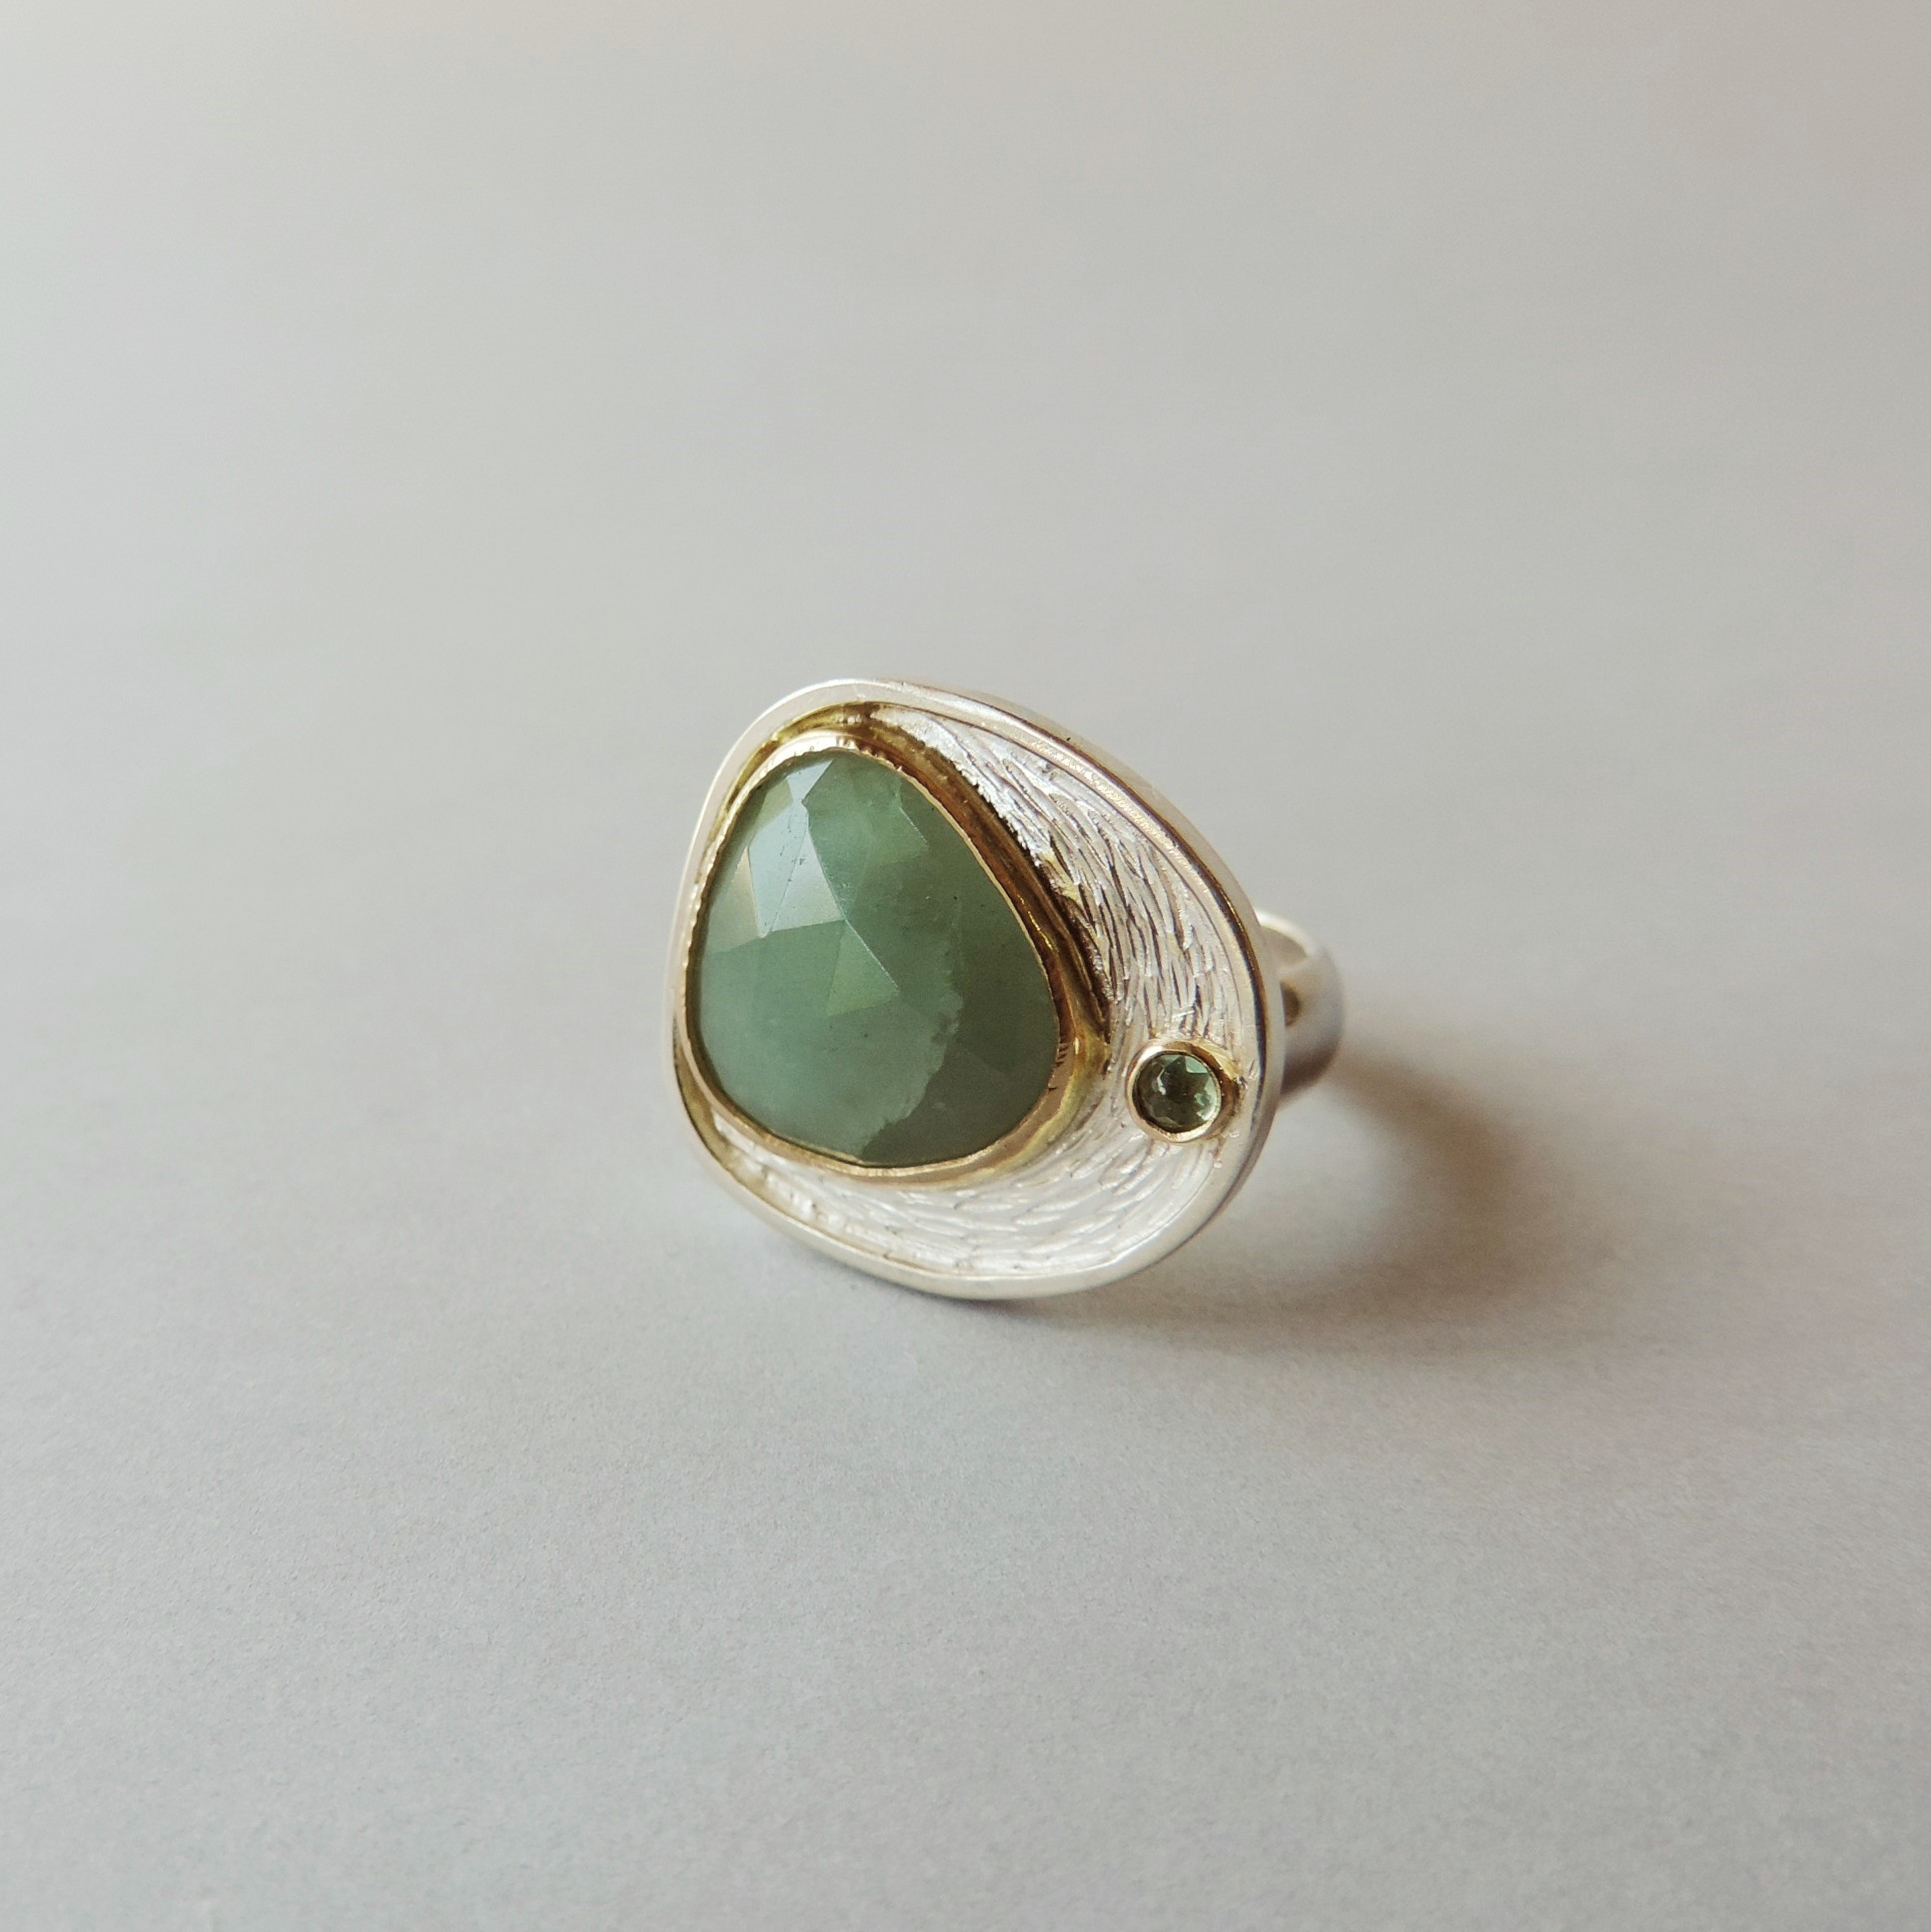 aquamarine silver and gold ring handmade for women statent jewelry designed for women